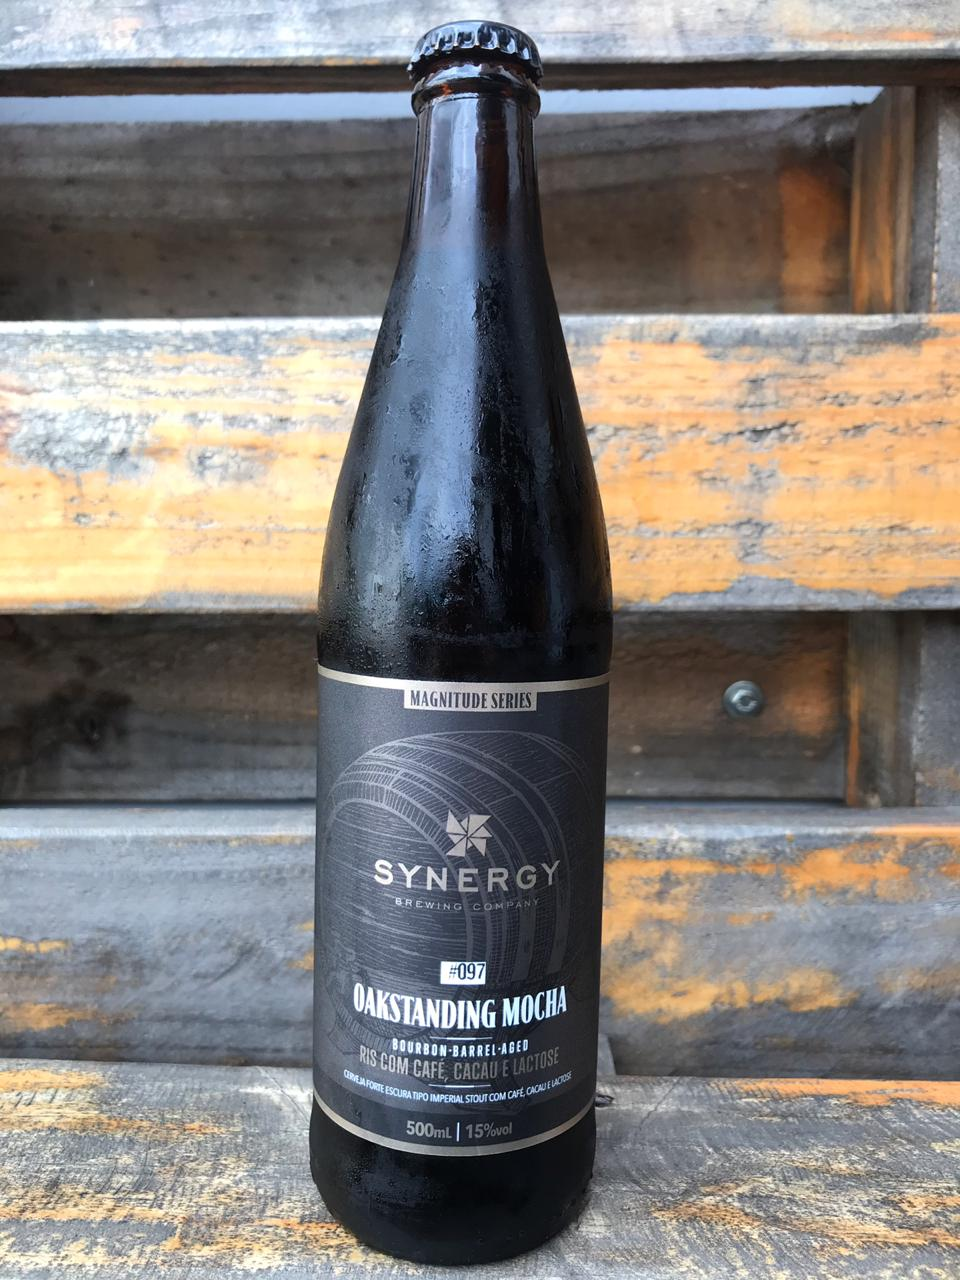 Synergy Oakstading Mocha Russian Imperial Stout Bourbon B.A. 500ml